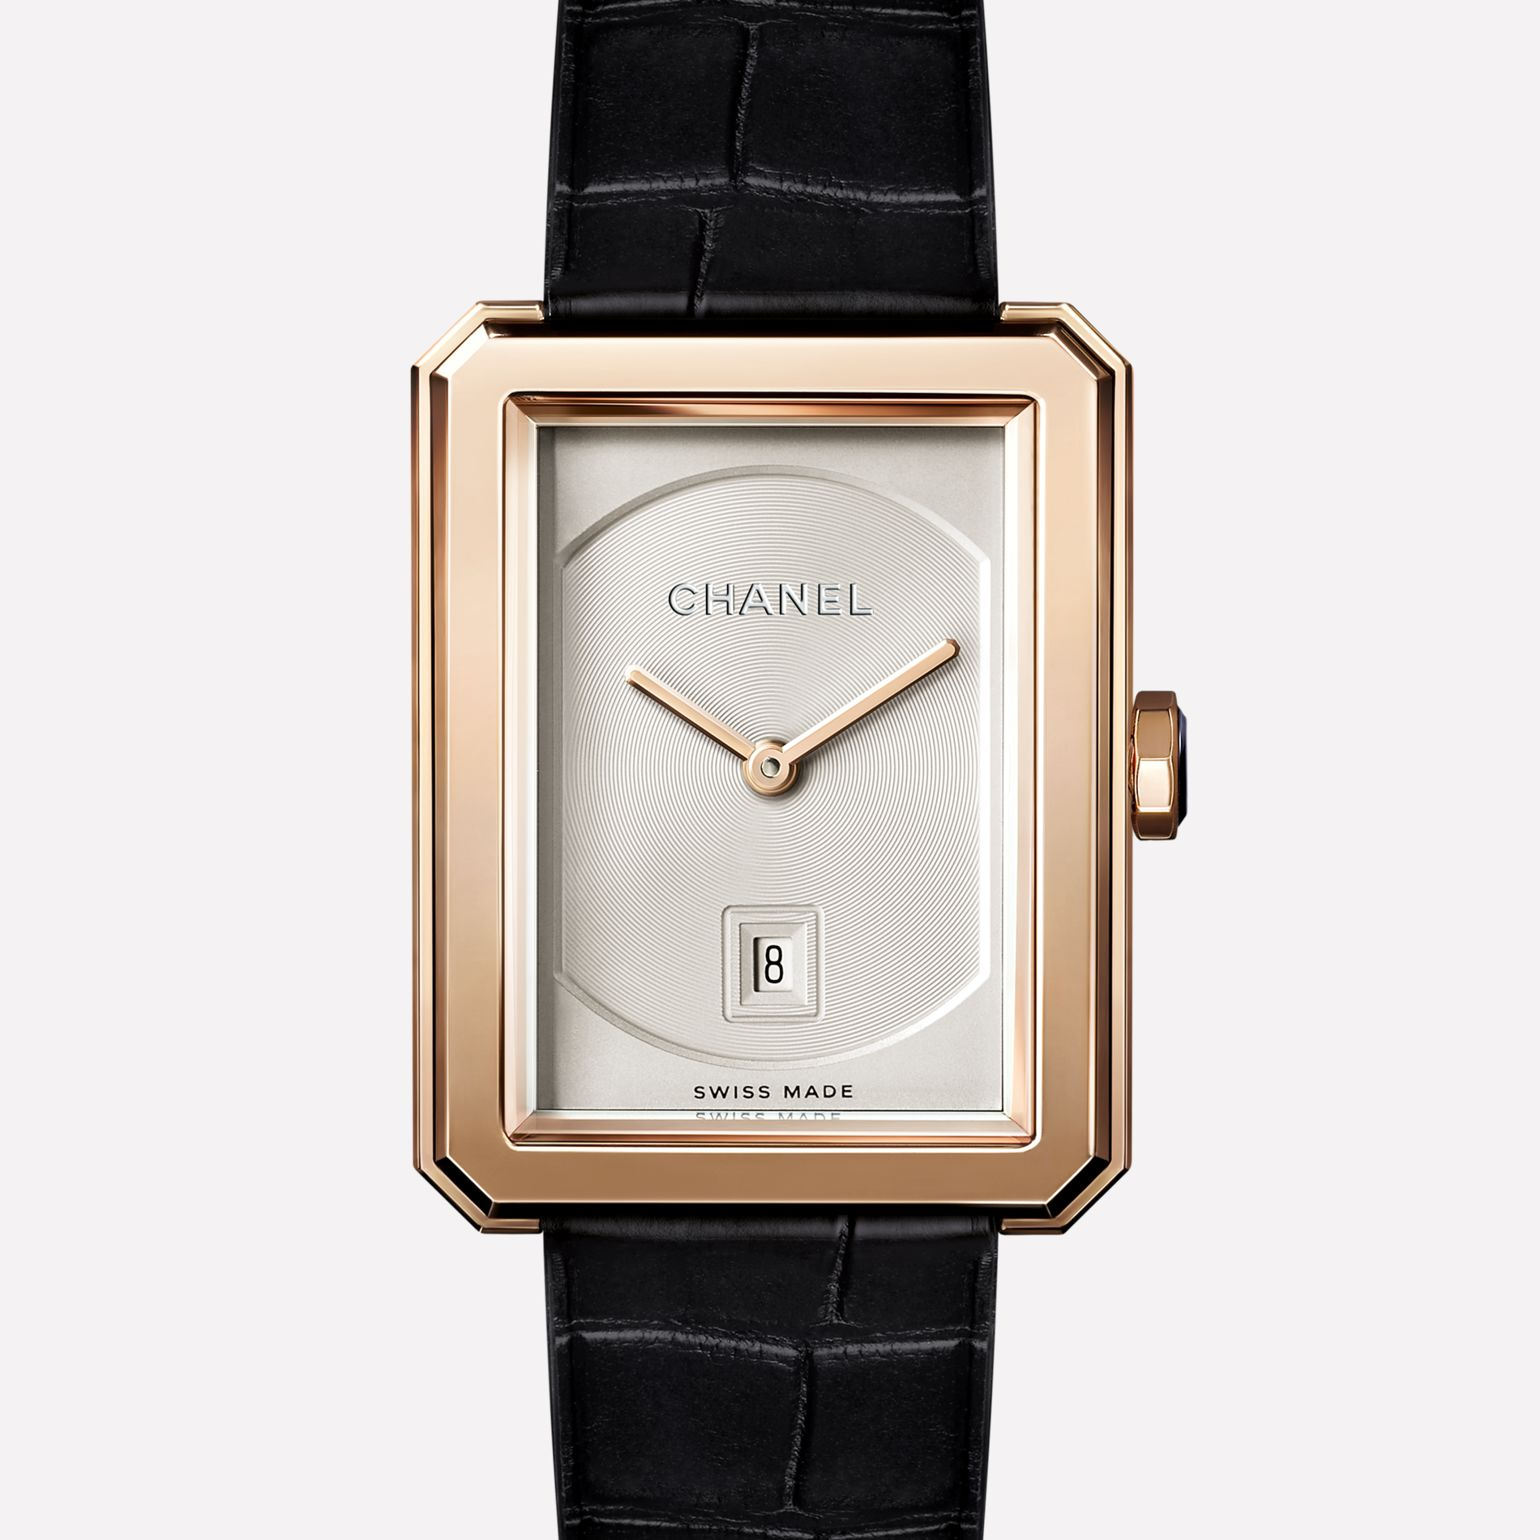 PREMIÈRE∙BOY DE CHANEL Medium version, BEIGE GOLD and alligator strap